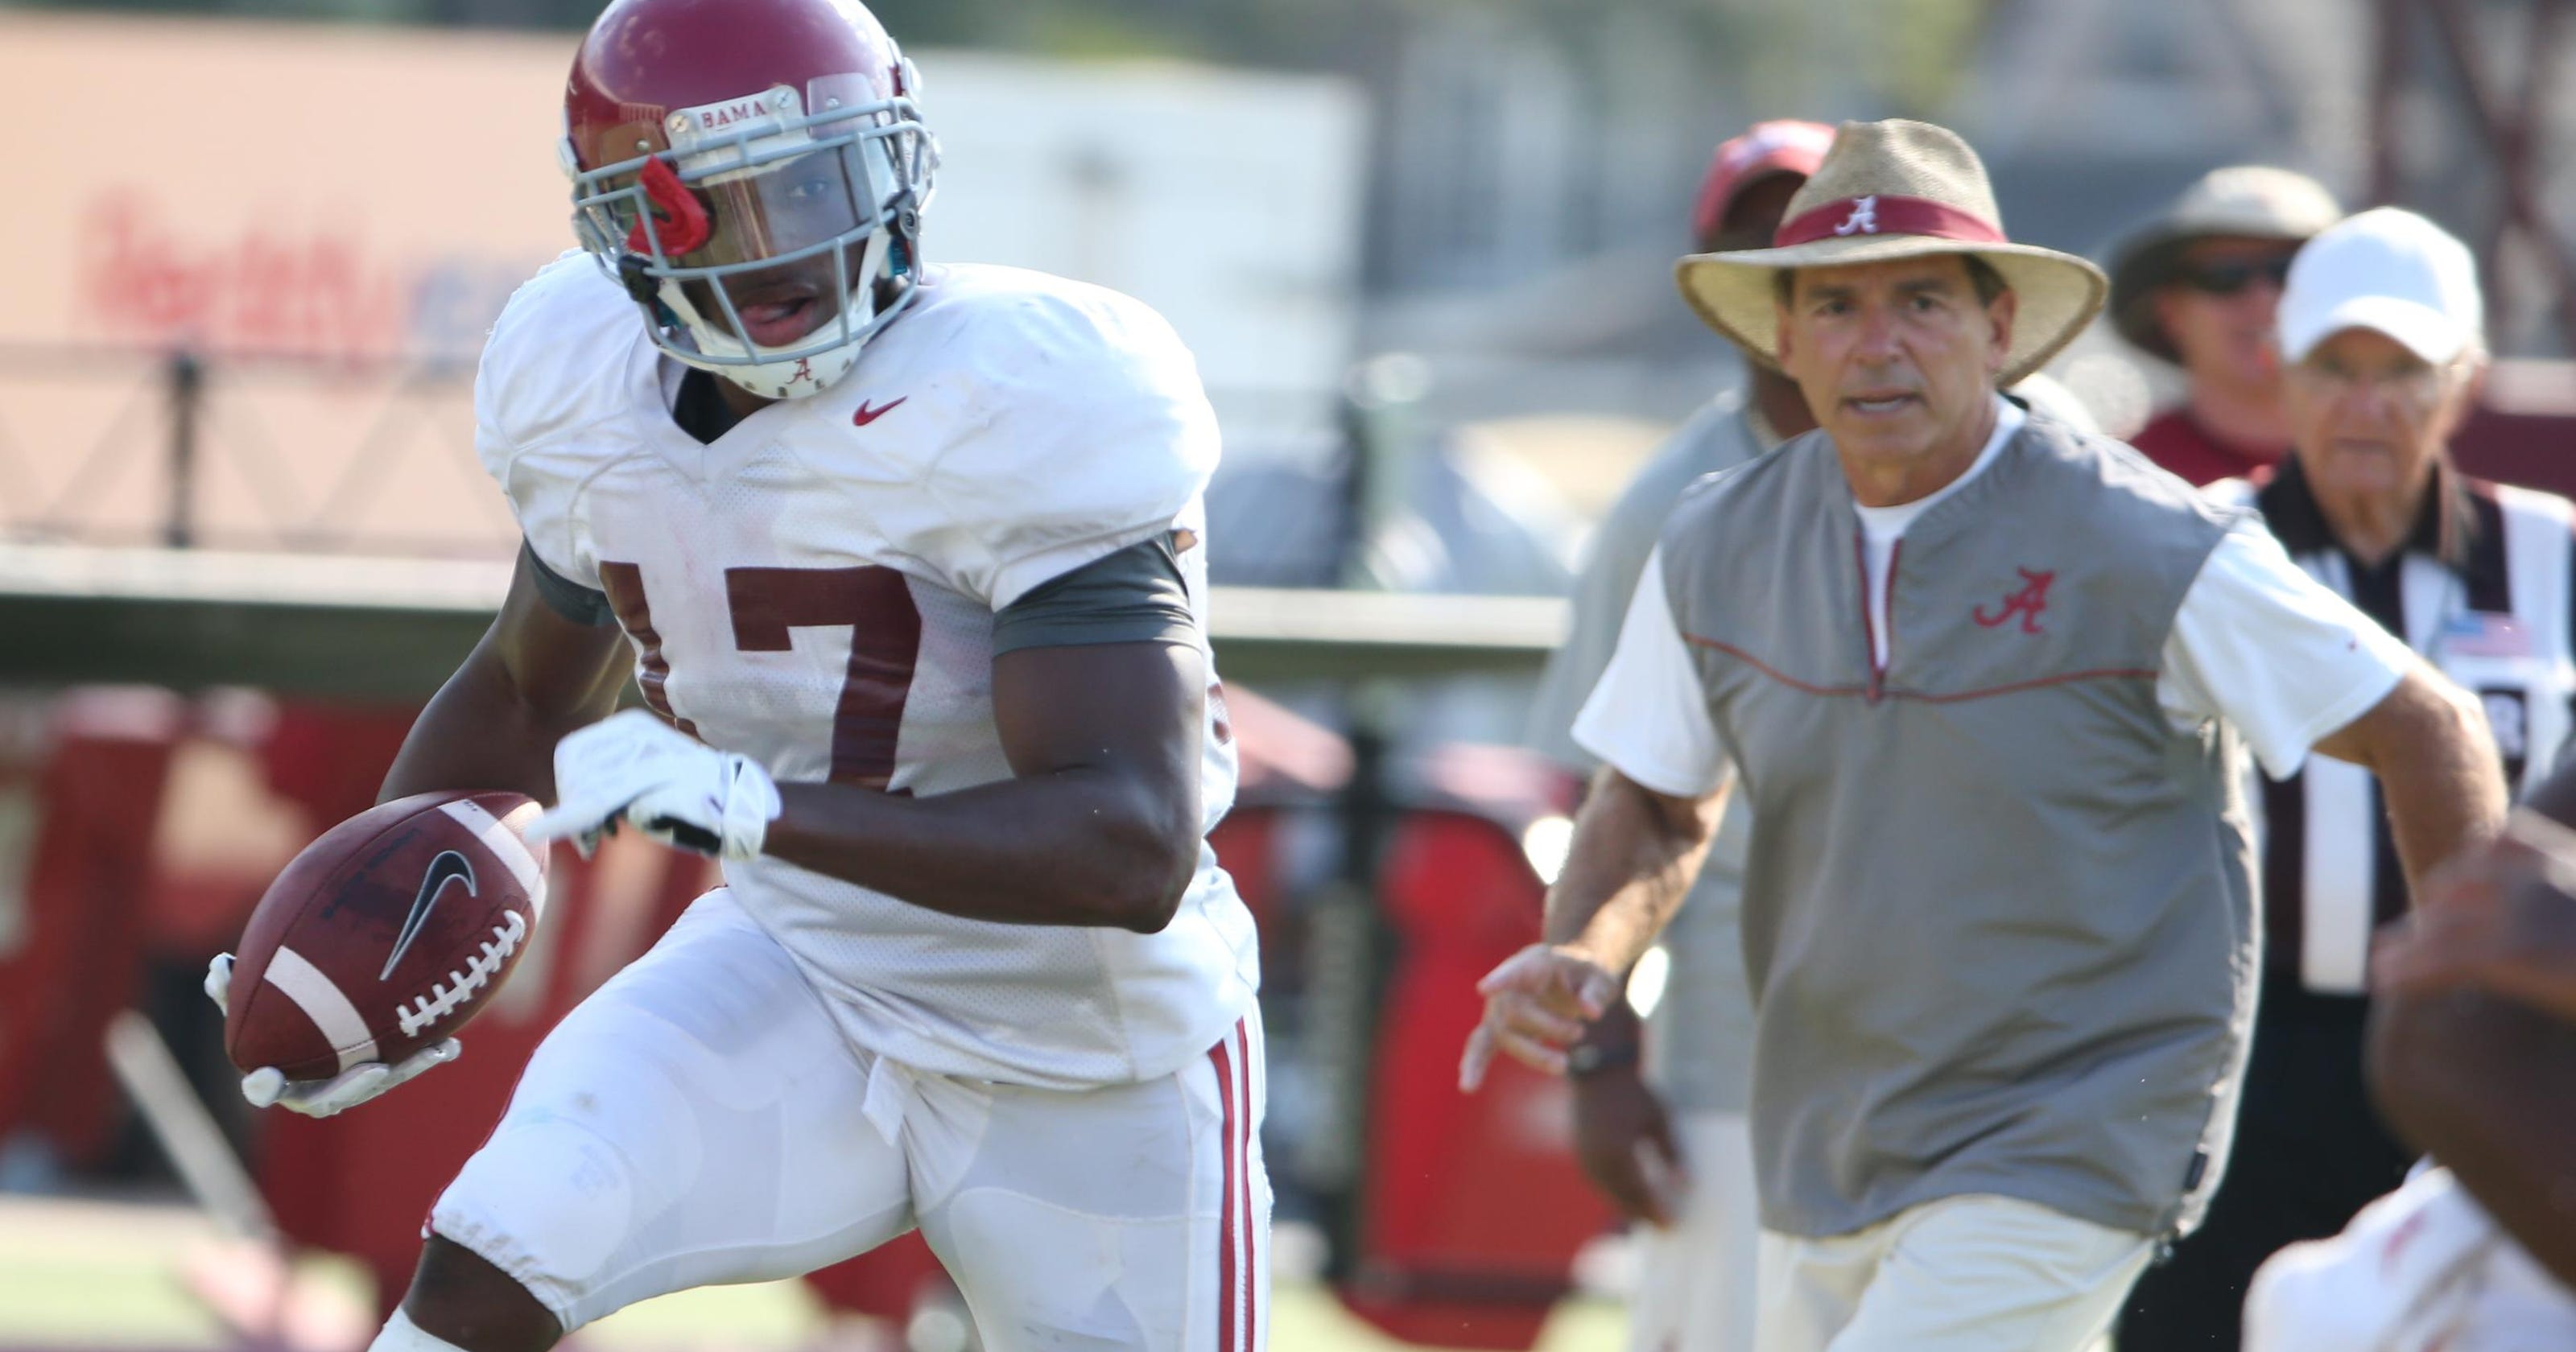 super popular 6ffeb 91ac1 Alabama notebook: Drake thrilled to shed black jersey